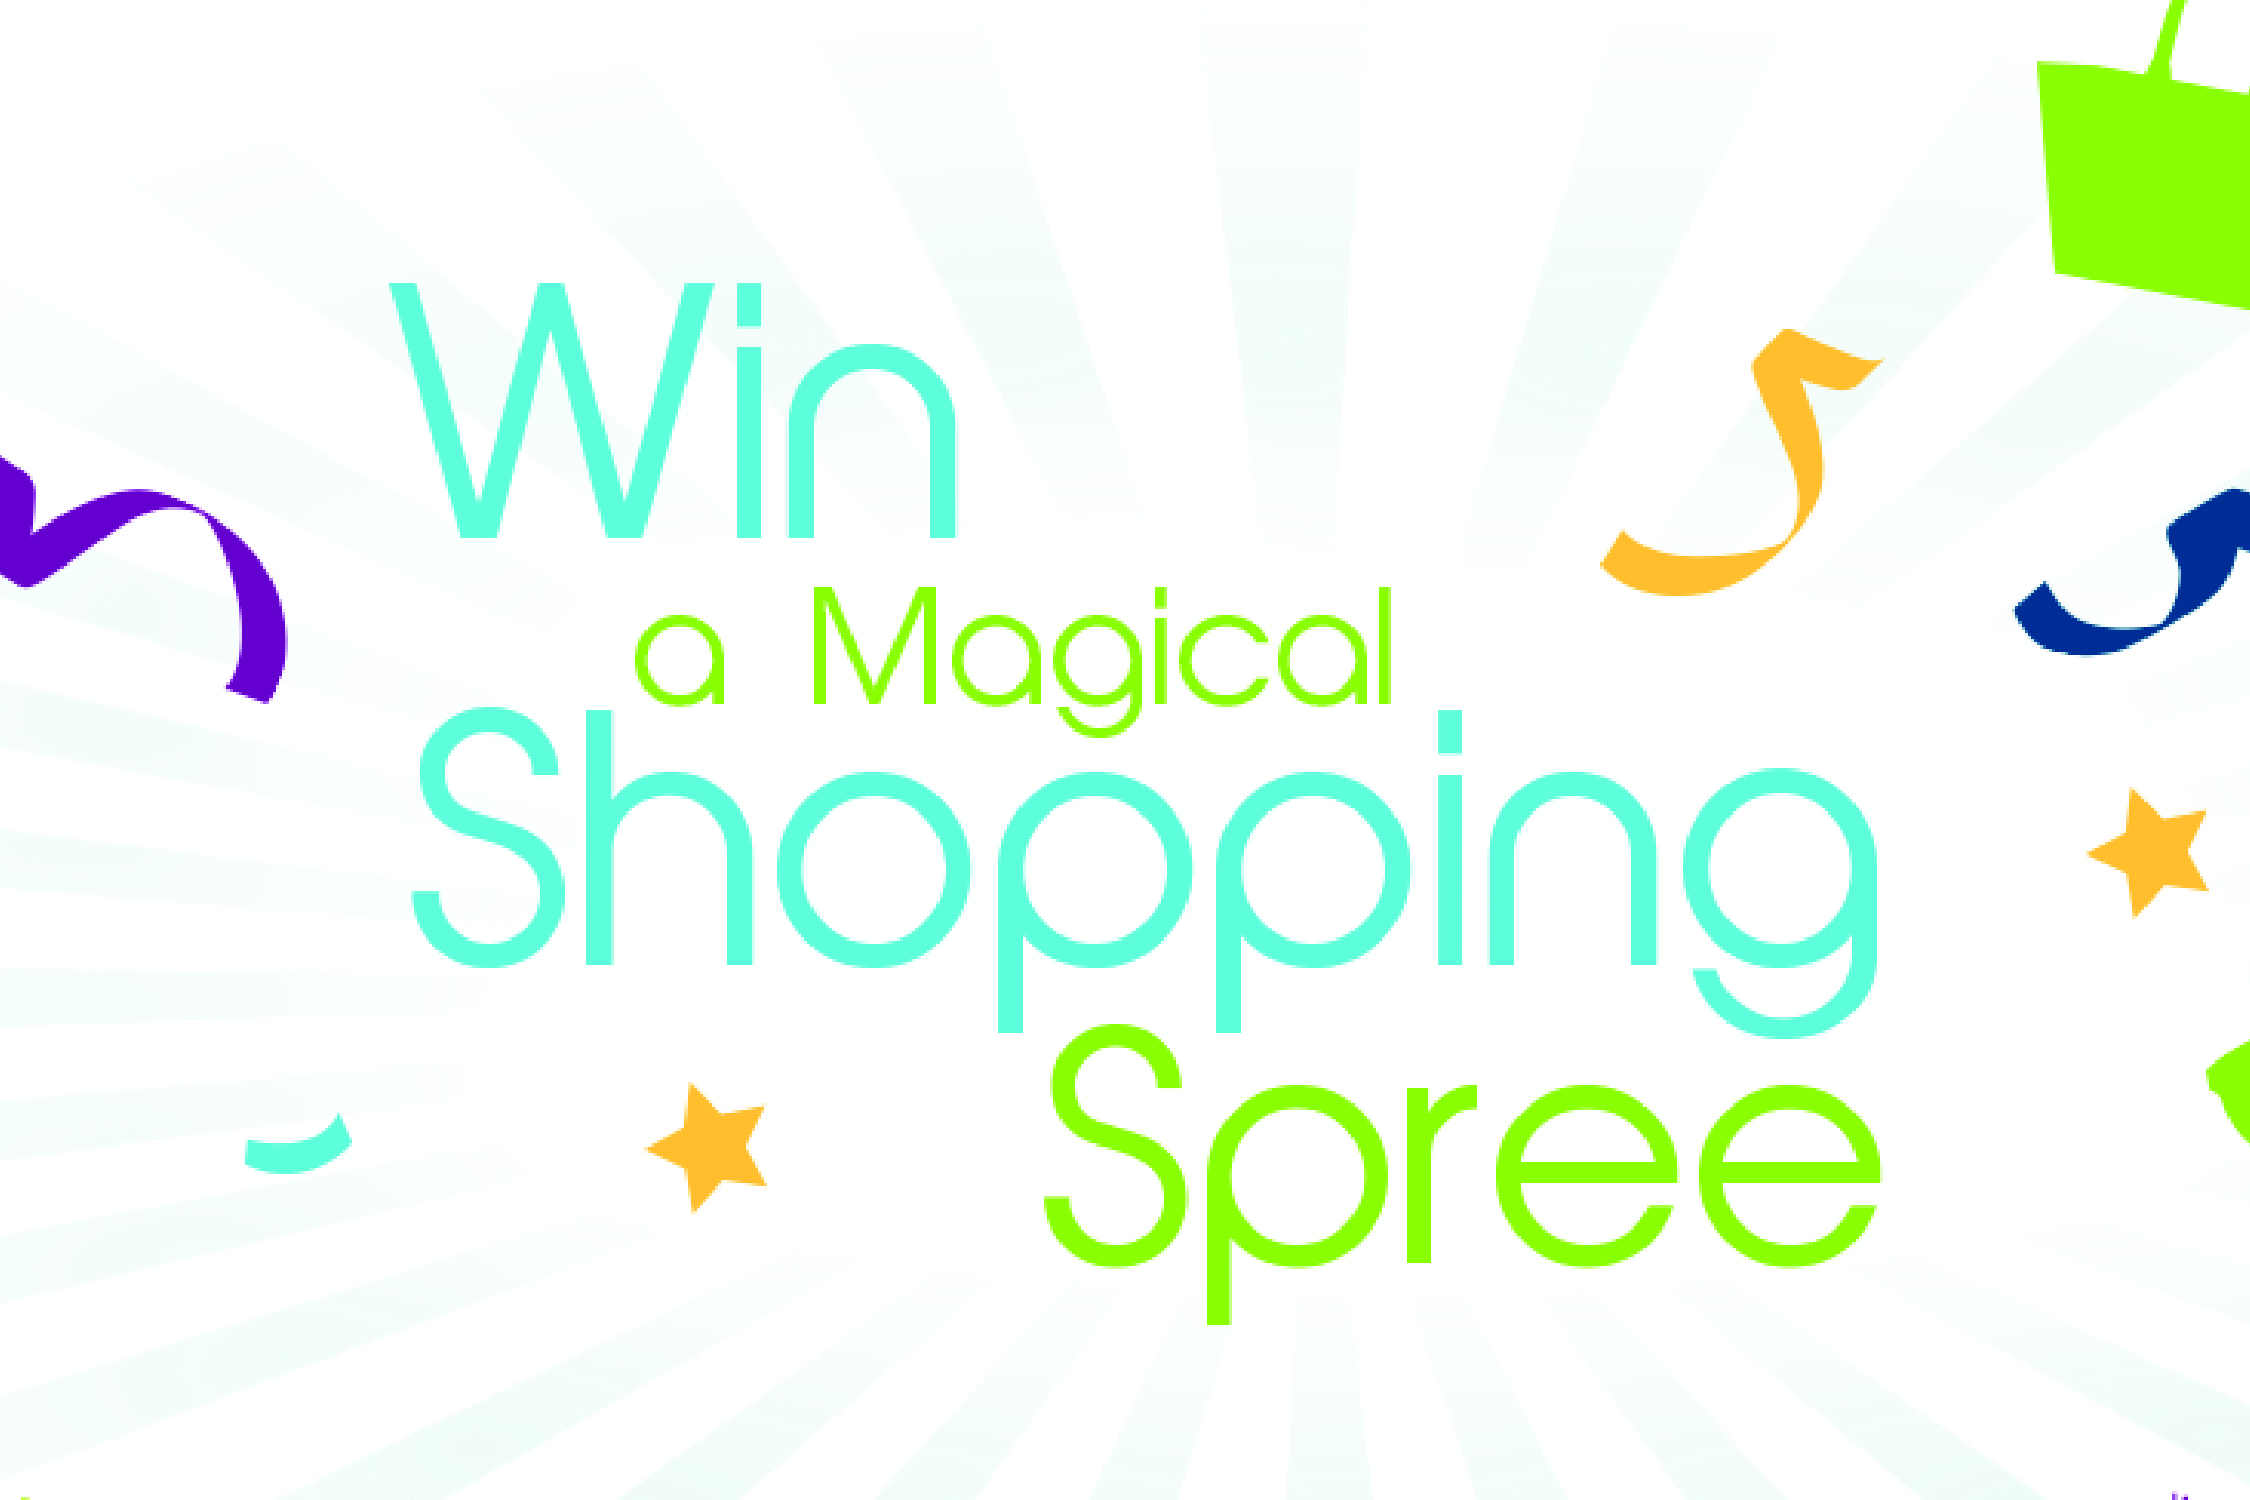 Win a magical shopping spree magic minute